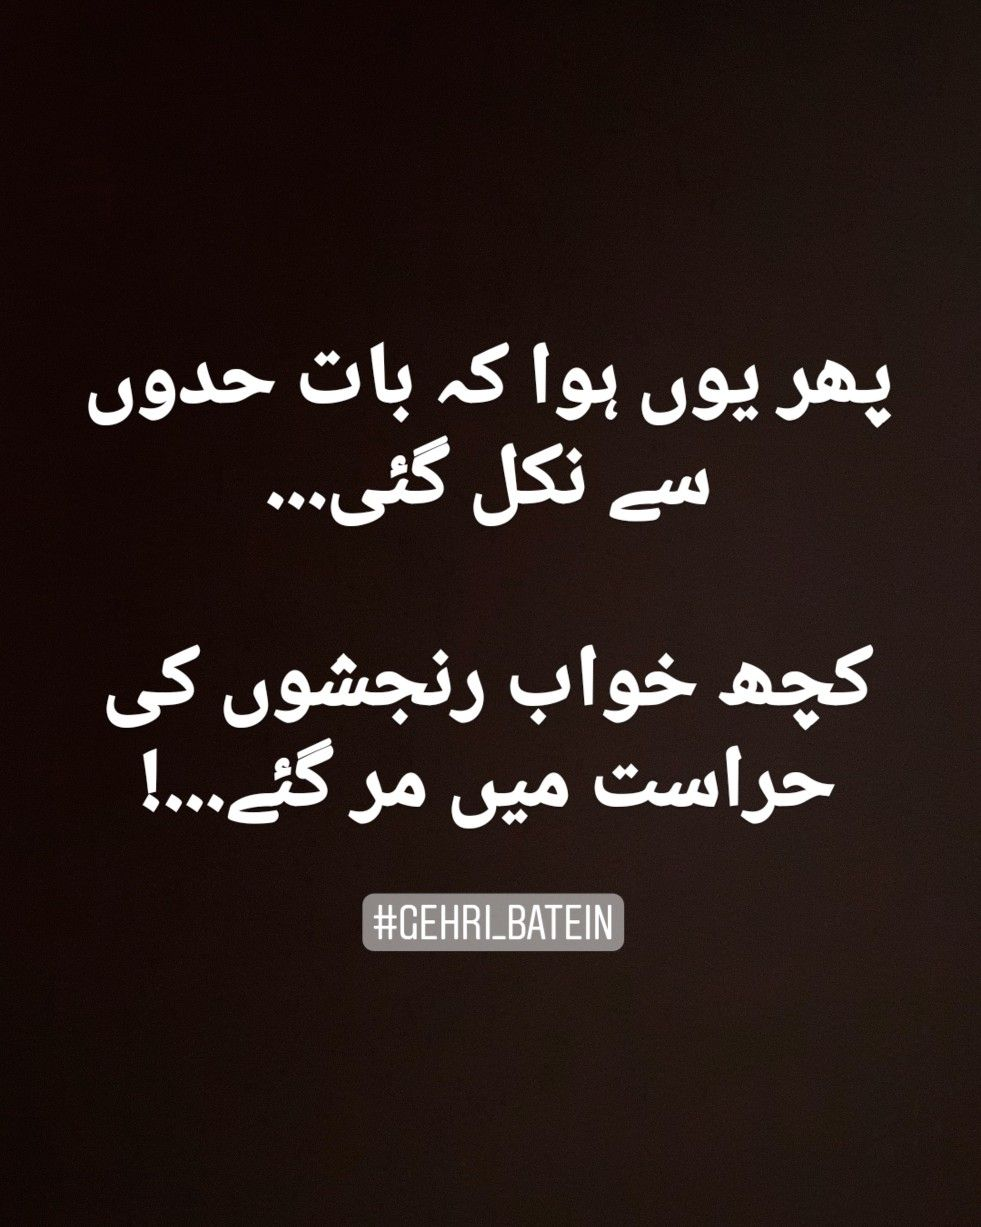 Mkhani ❤ | Peotry | Poetry feelings, Poetry pic, Urdu poetry